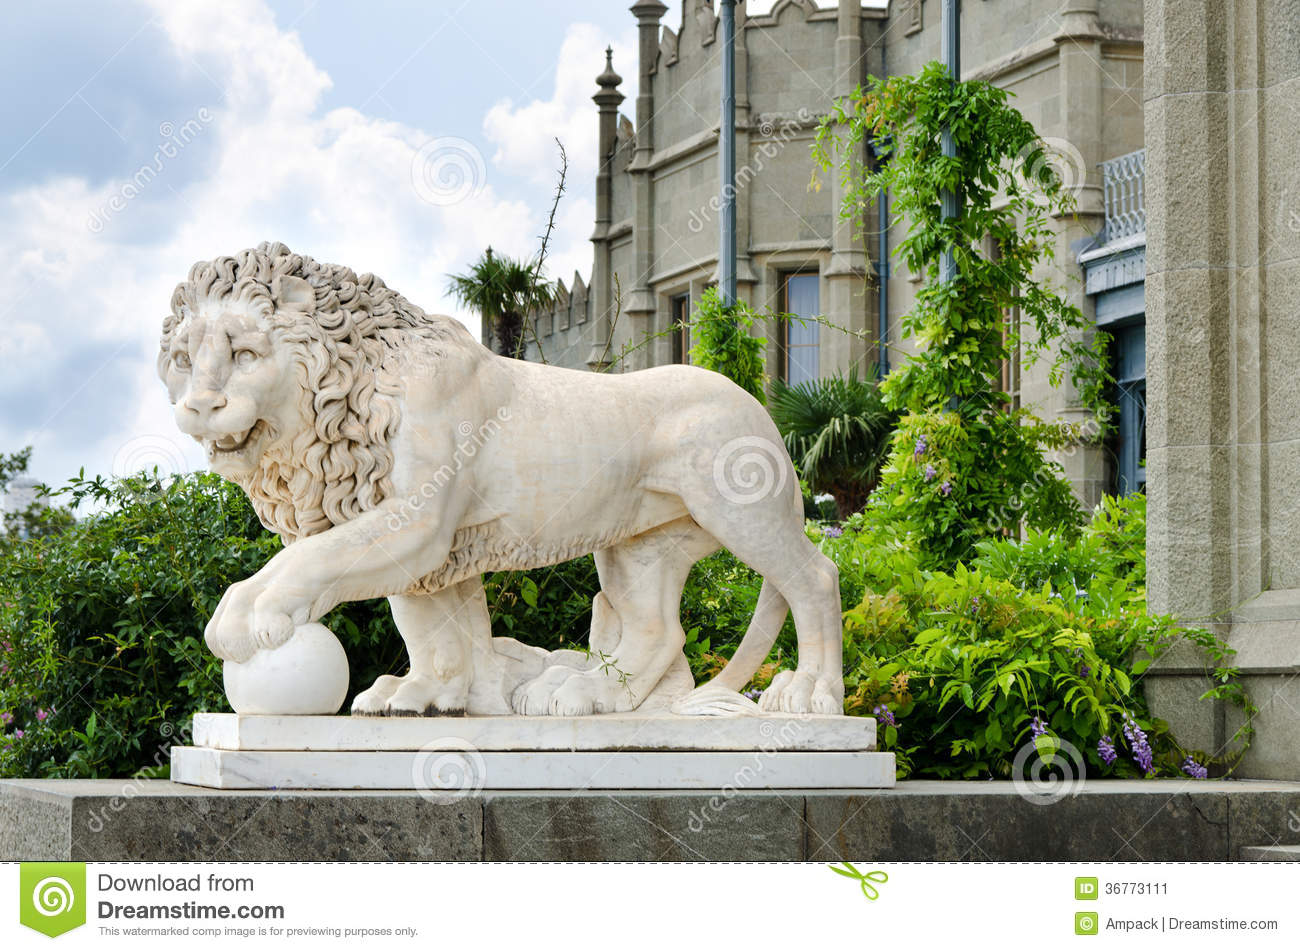 Lion Statue Outside A Castle Stock Image  Image of guardian handcarved 36773111